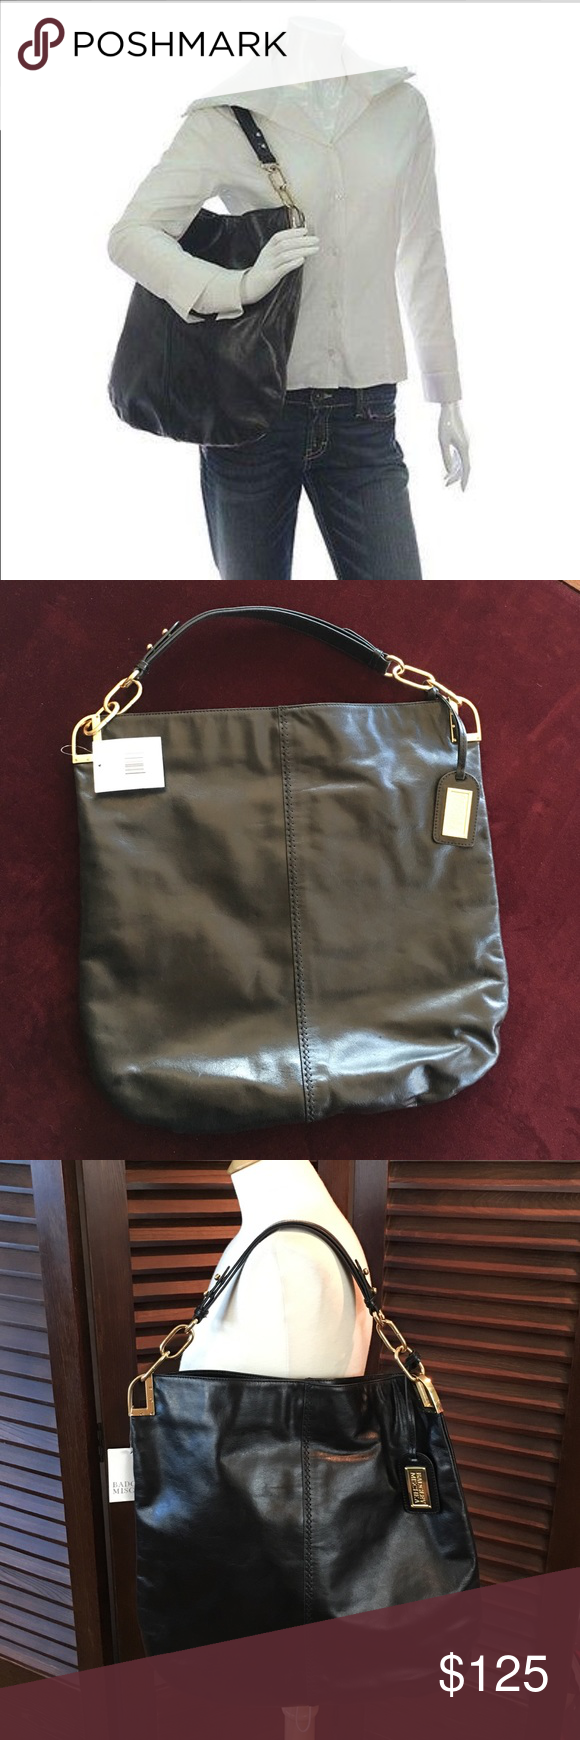 """Badgley Mischka Gaia Black Leather Tote Handbag Brand new with tags.  Dimensions are:  16 3/4"""" long, 16 1/2"""" high, and depth is approx. 1/2"""".  This tote has a single magnetic snap closure with one main large compartment.  The interior lining is solid black with one small zip pocket and two small open pockets (the layout you find in most handbags).  Comes with dust bag. Badgley Mischka Bags Totes"""